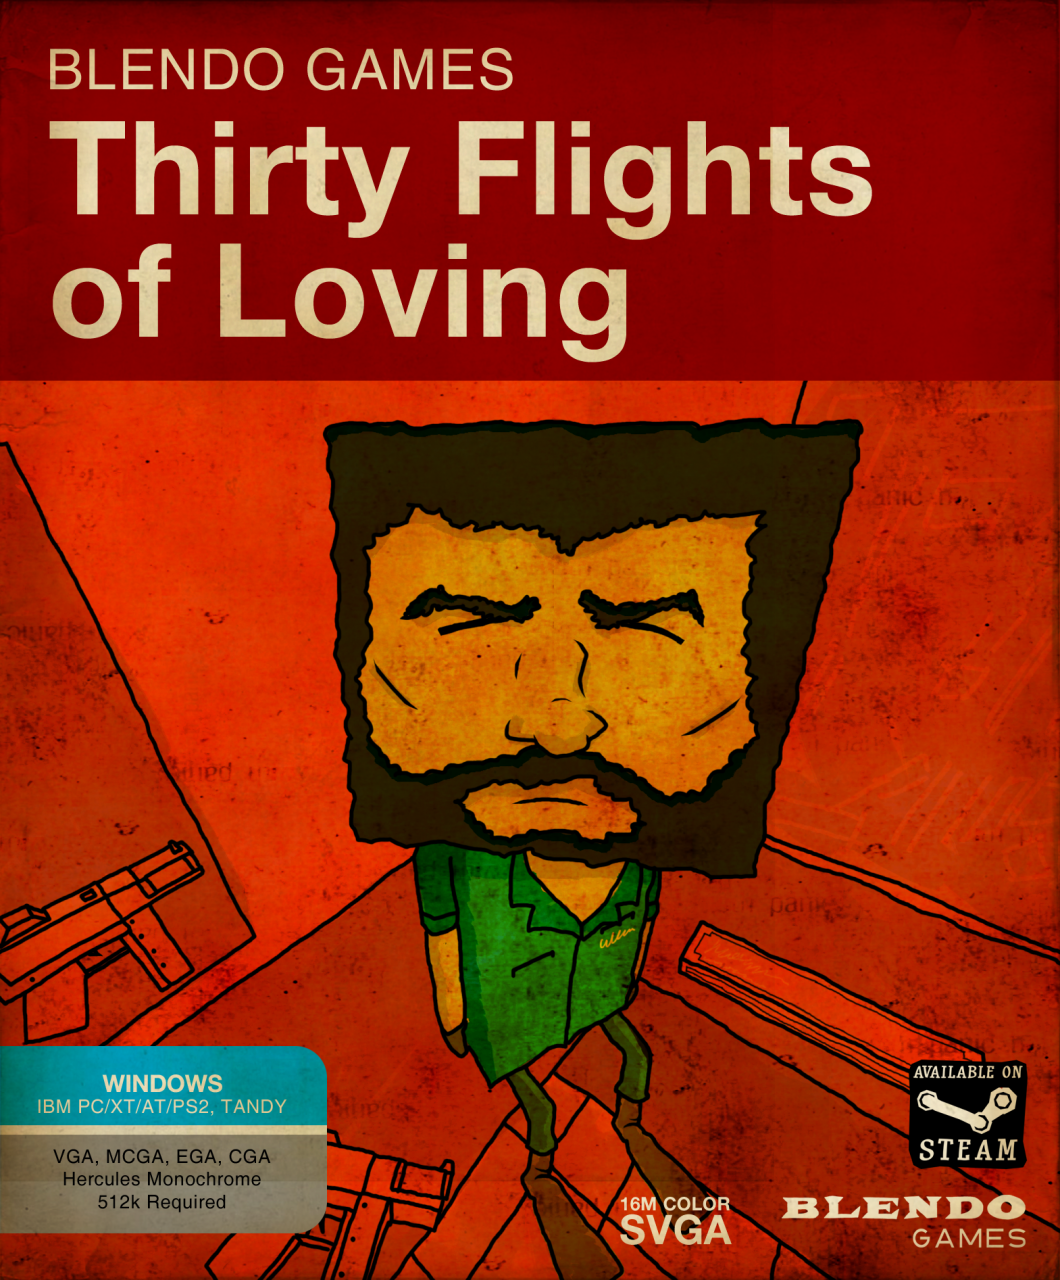 Thirty Flights of Loving, by Blendo Games.